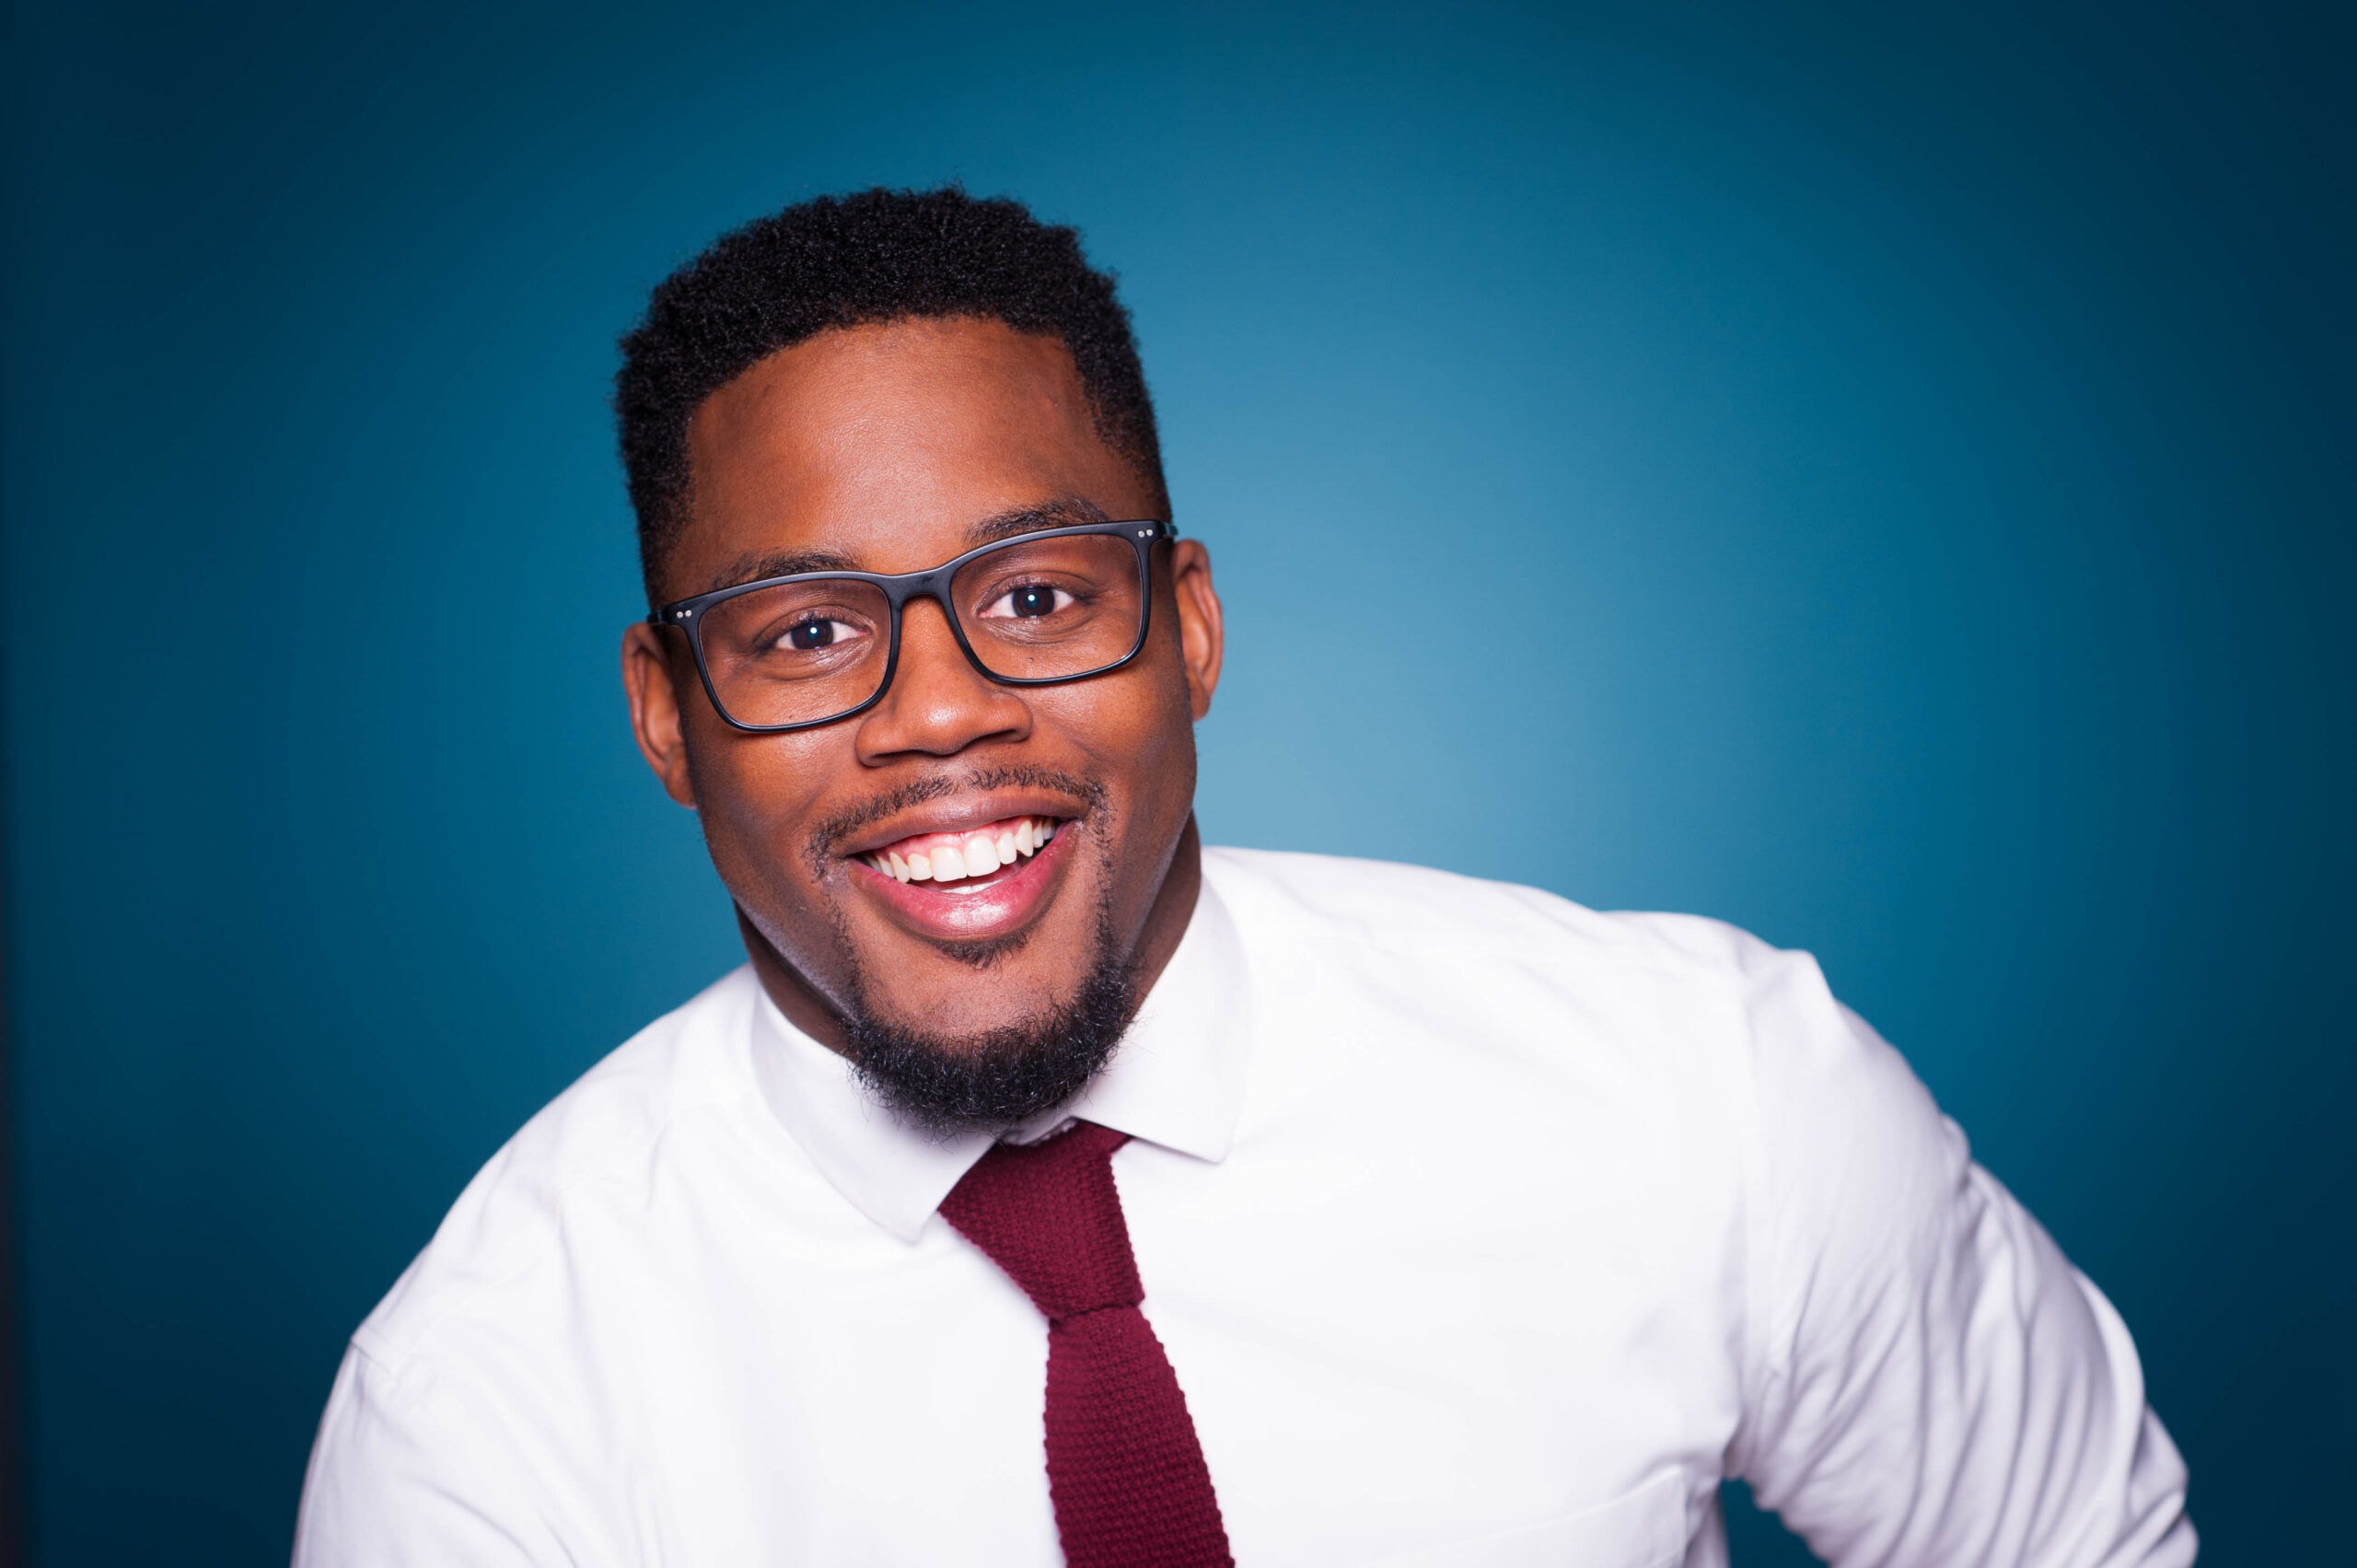 Here's what this startup founder thinks about being #blackintech